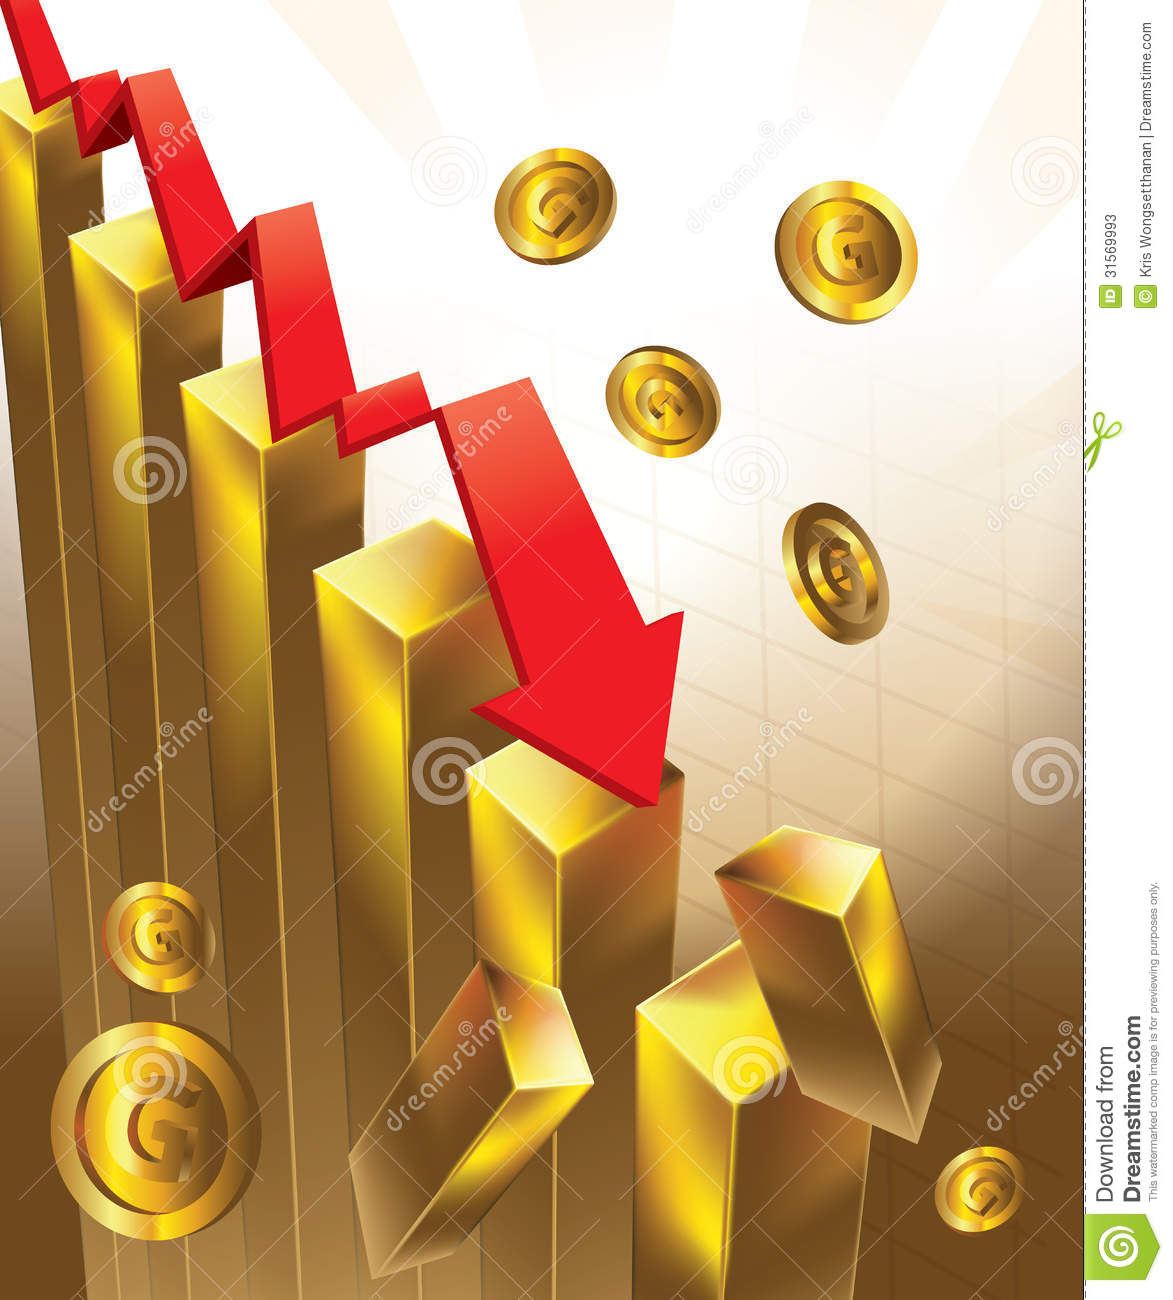 Gold Price Chart Falling Stock Vector Illustration Of Banking